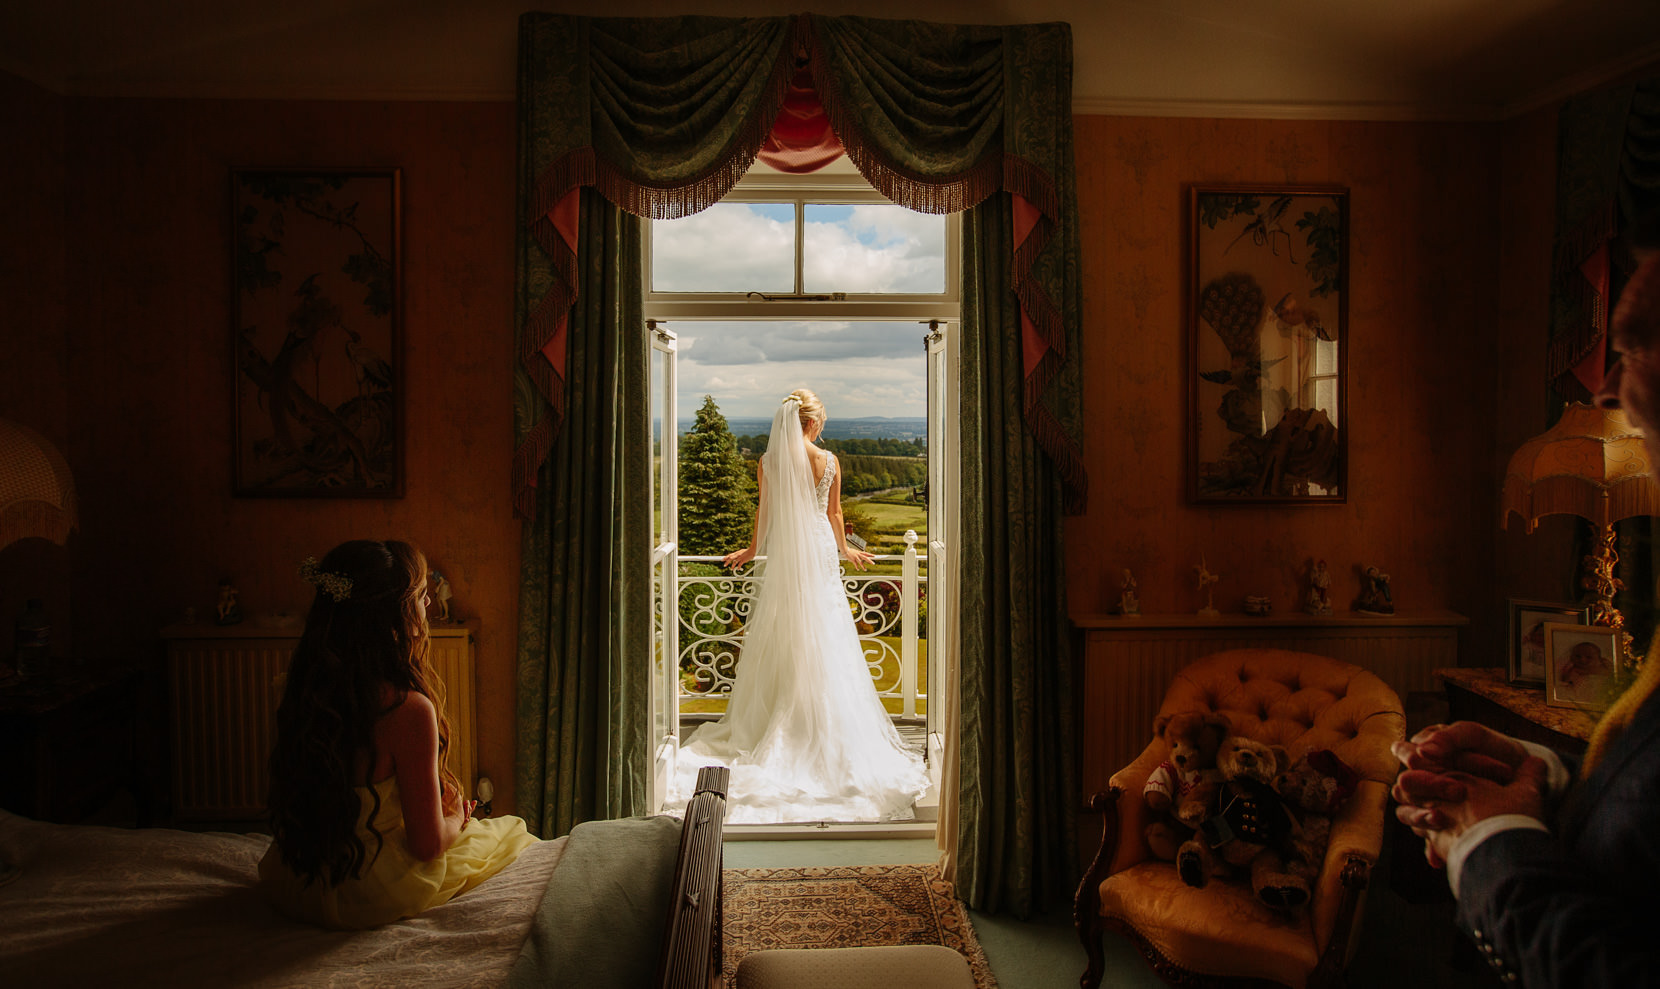 Shropshire Wedding Photography with a beautiful bride